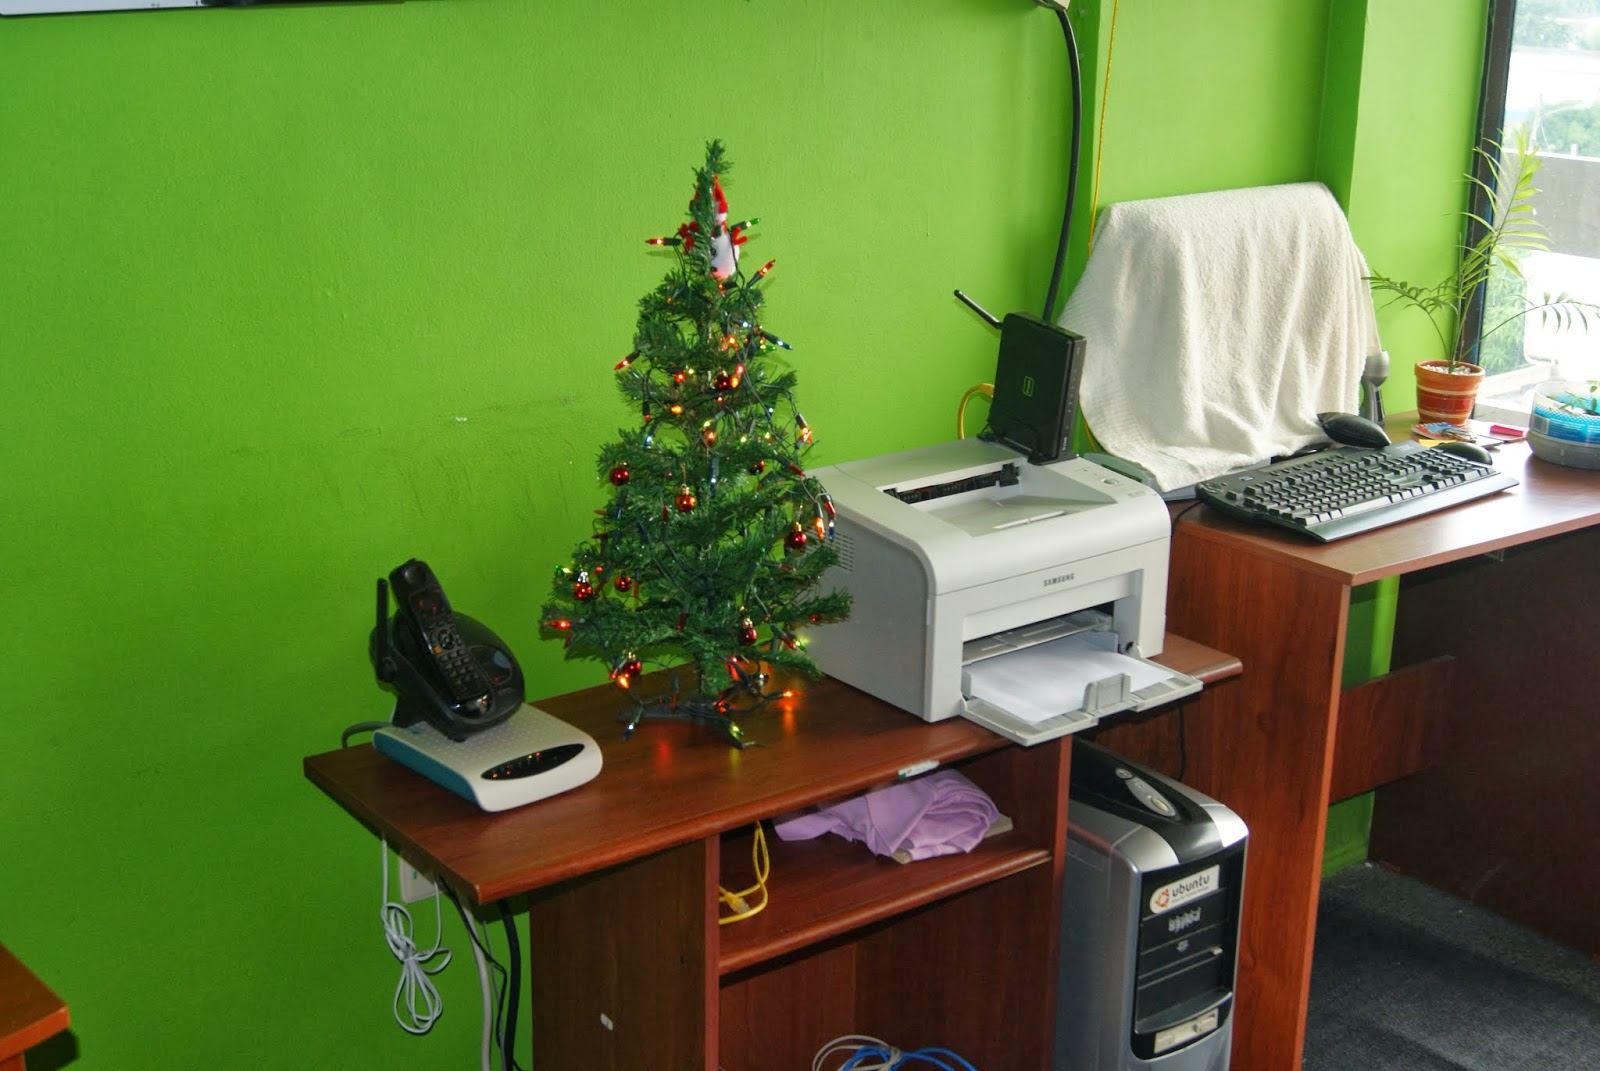 Megaoffice viste de navidad tu oficina for Tips para decorar una oficina